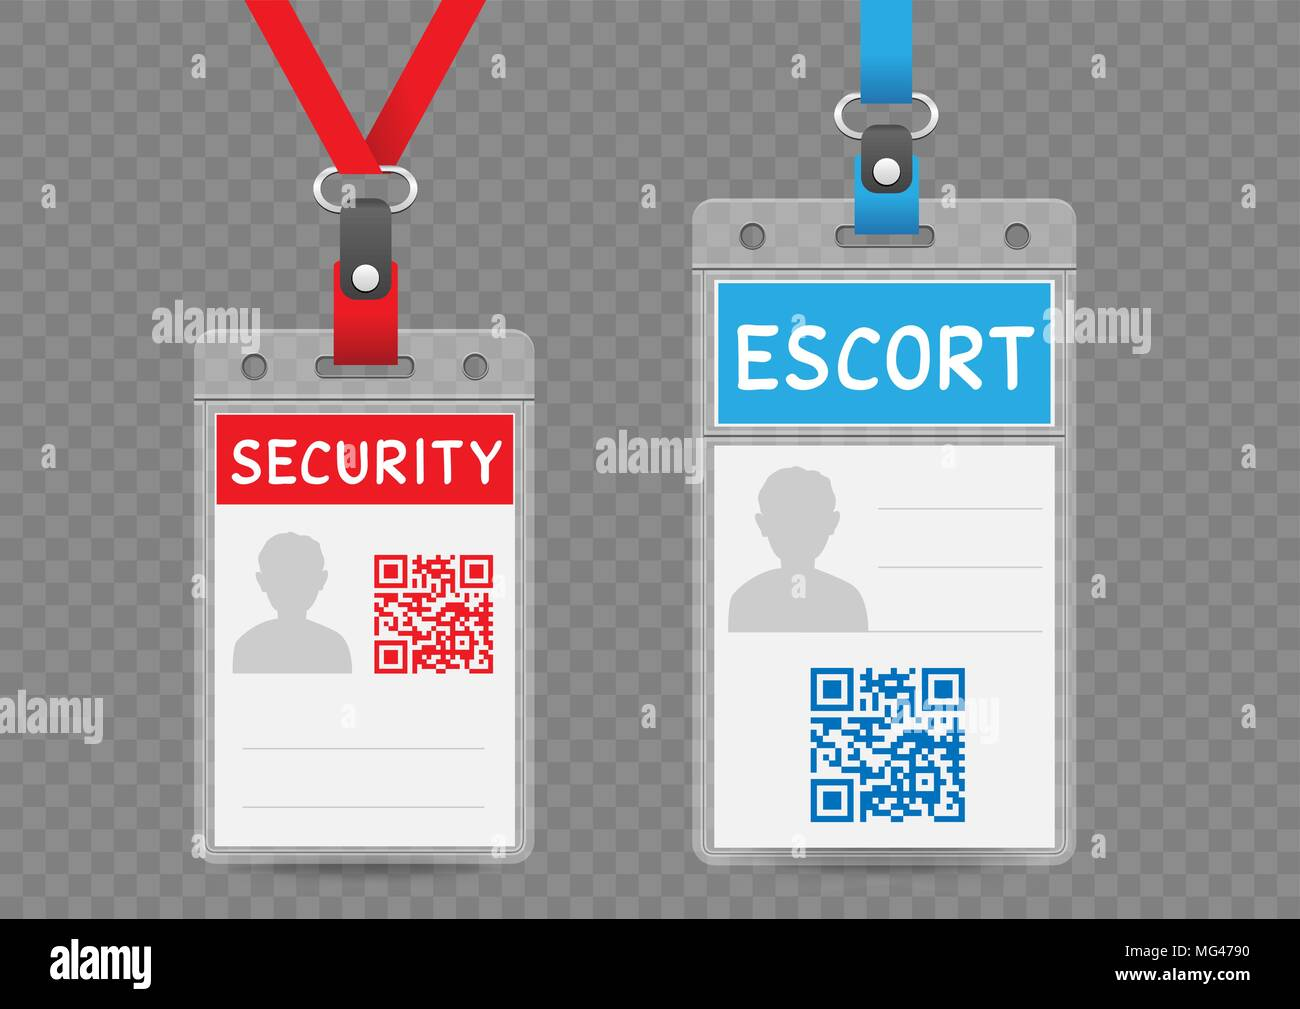 Security escort vertical badge empty template with blue and red ...